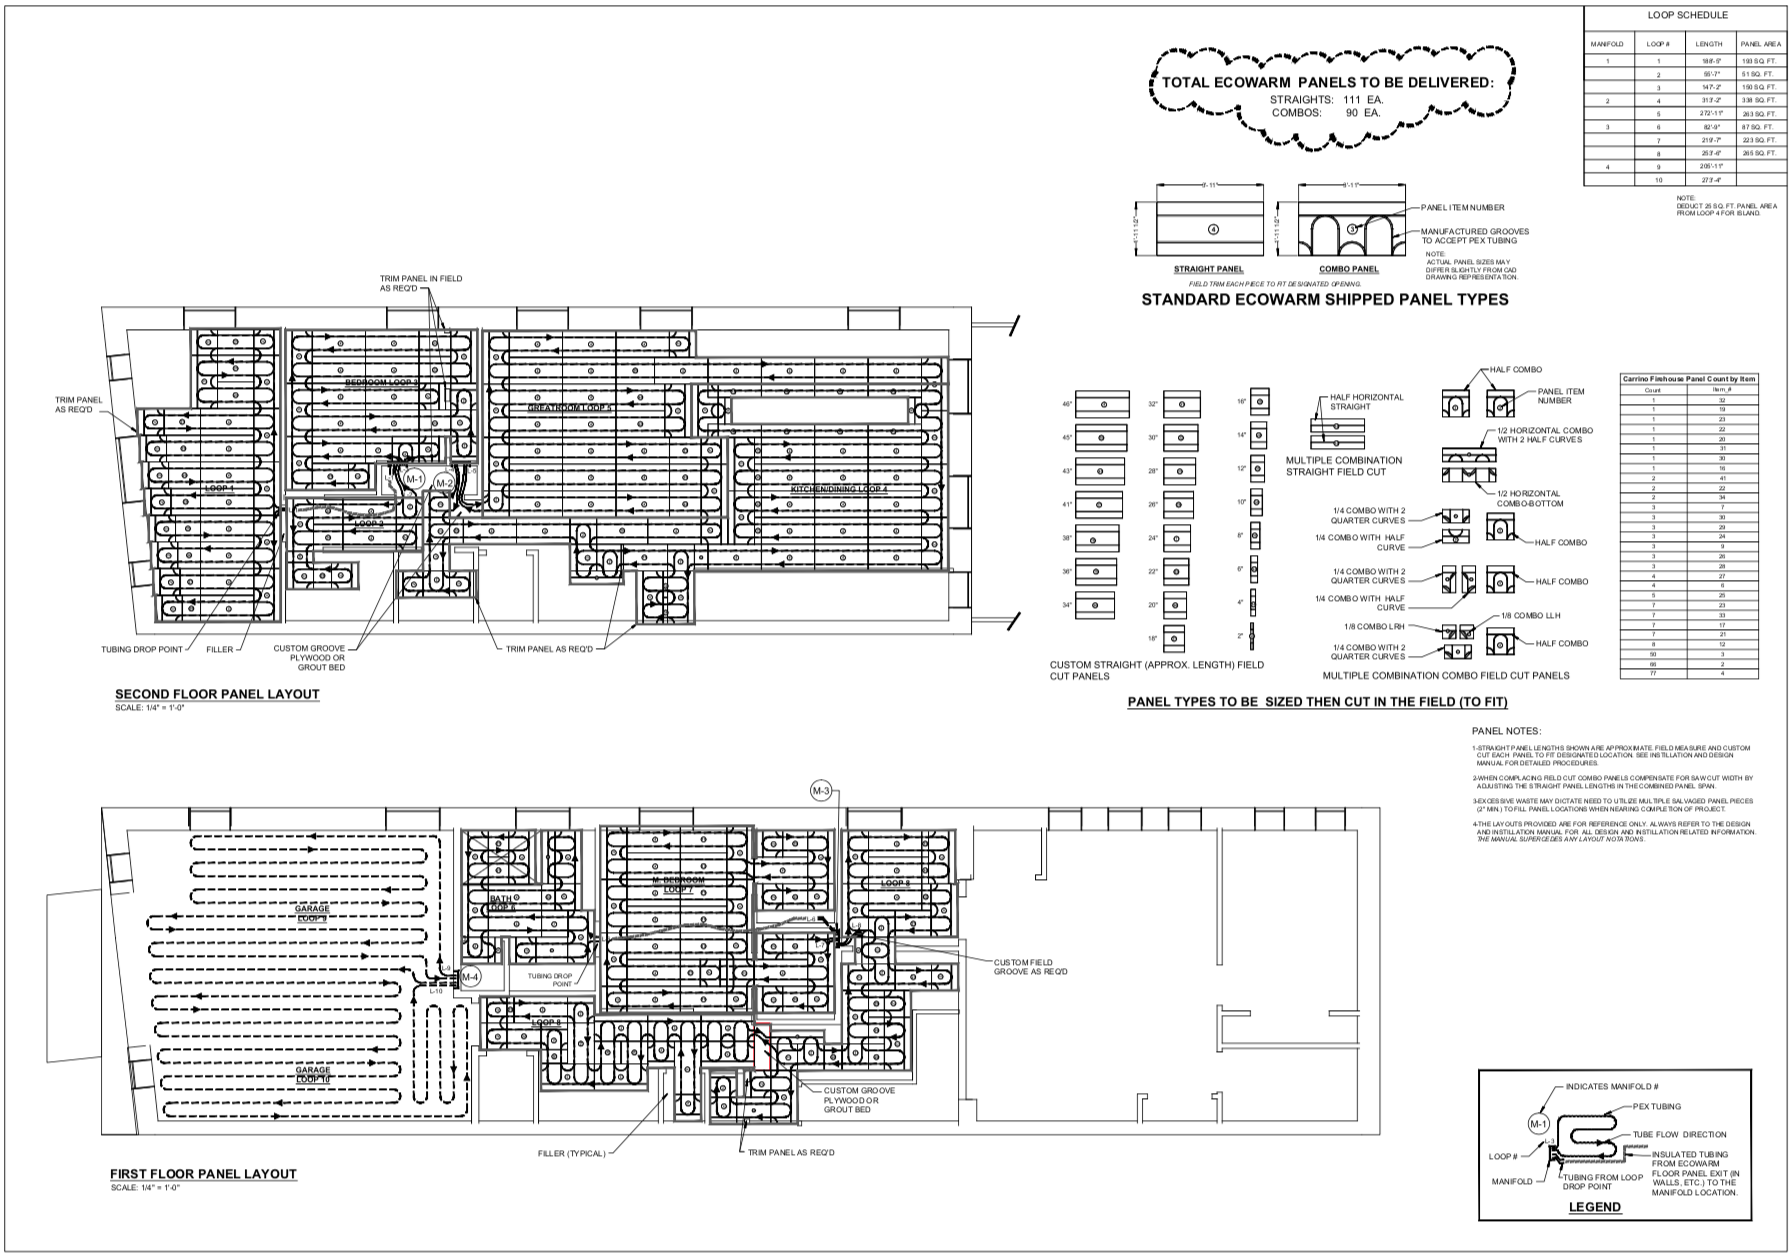 Ecowarm Layout for the Firehouse - click to enlarge